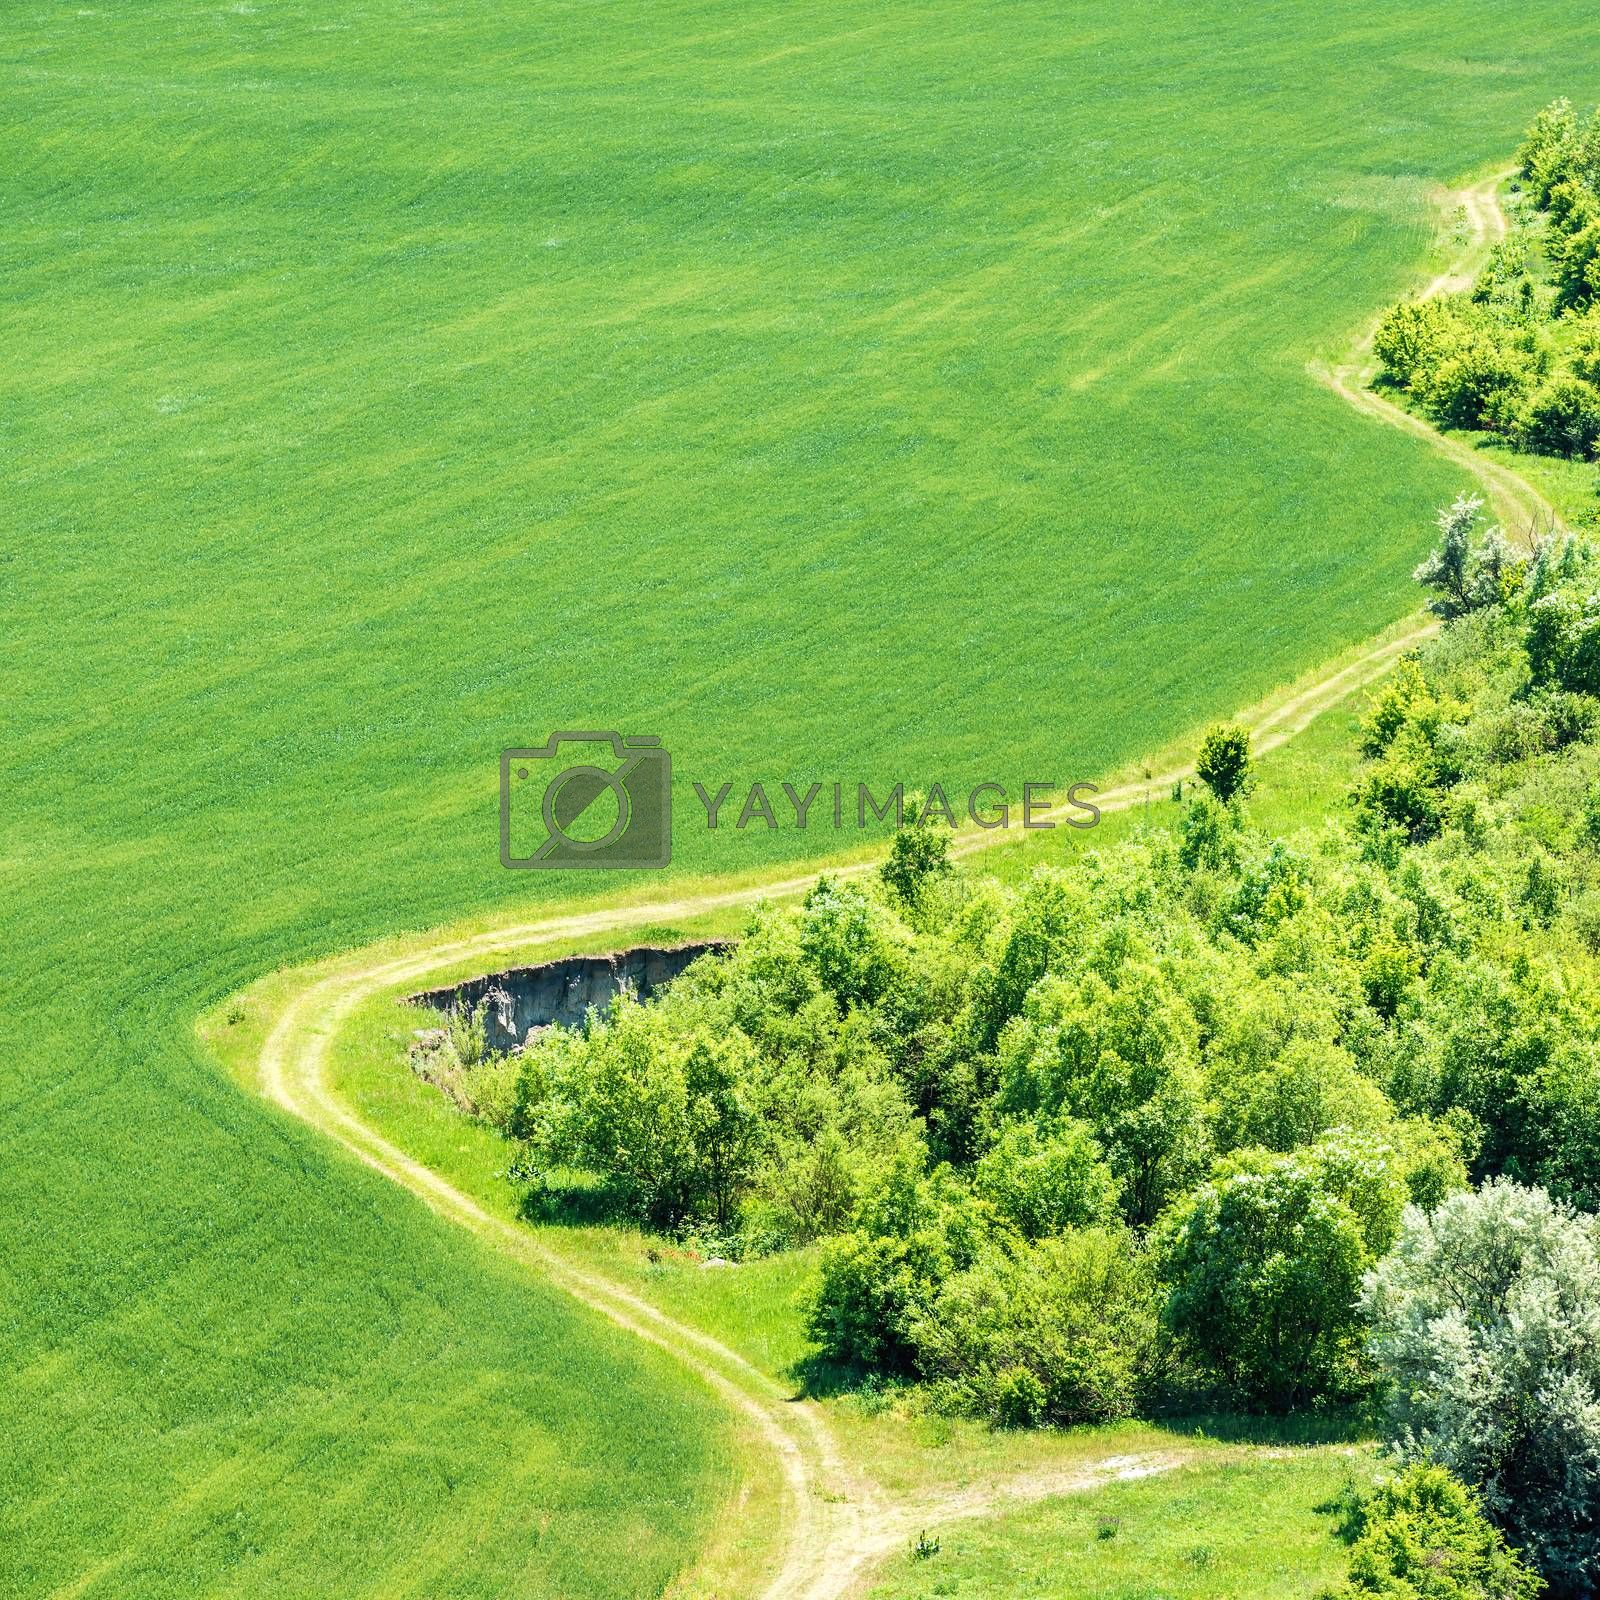 Landscape with green grass field with nearby forest and country road passing by. Aerial view